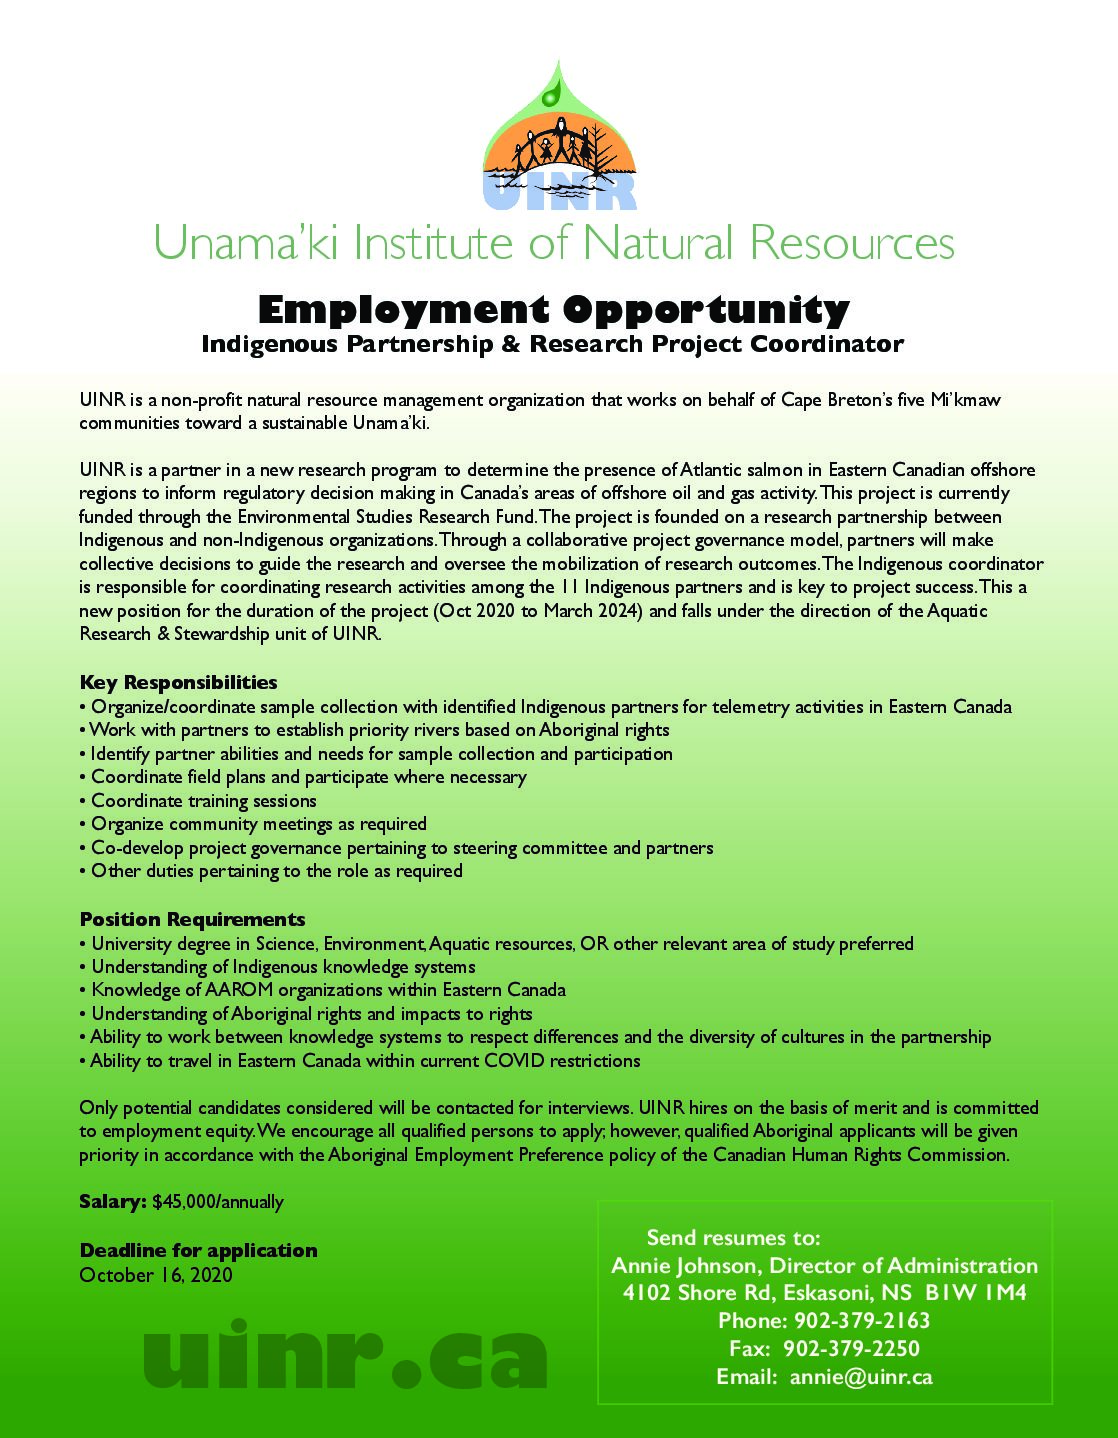 Employment Opportunity: Indigenous Partnership & Research Project Coordinator